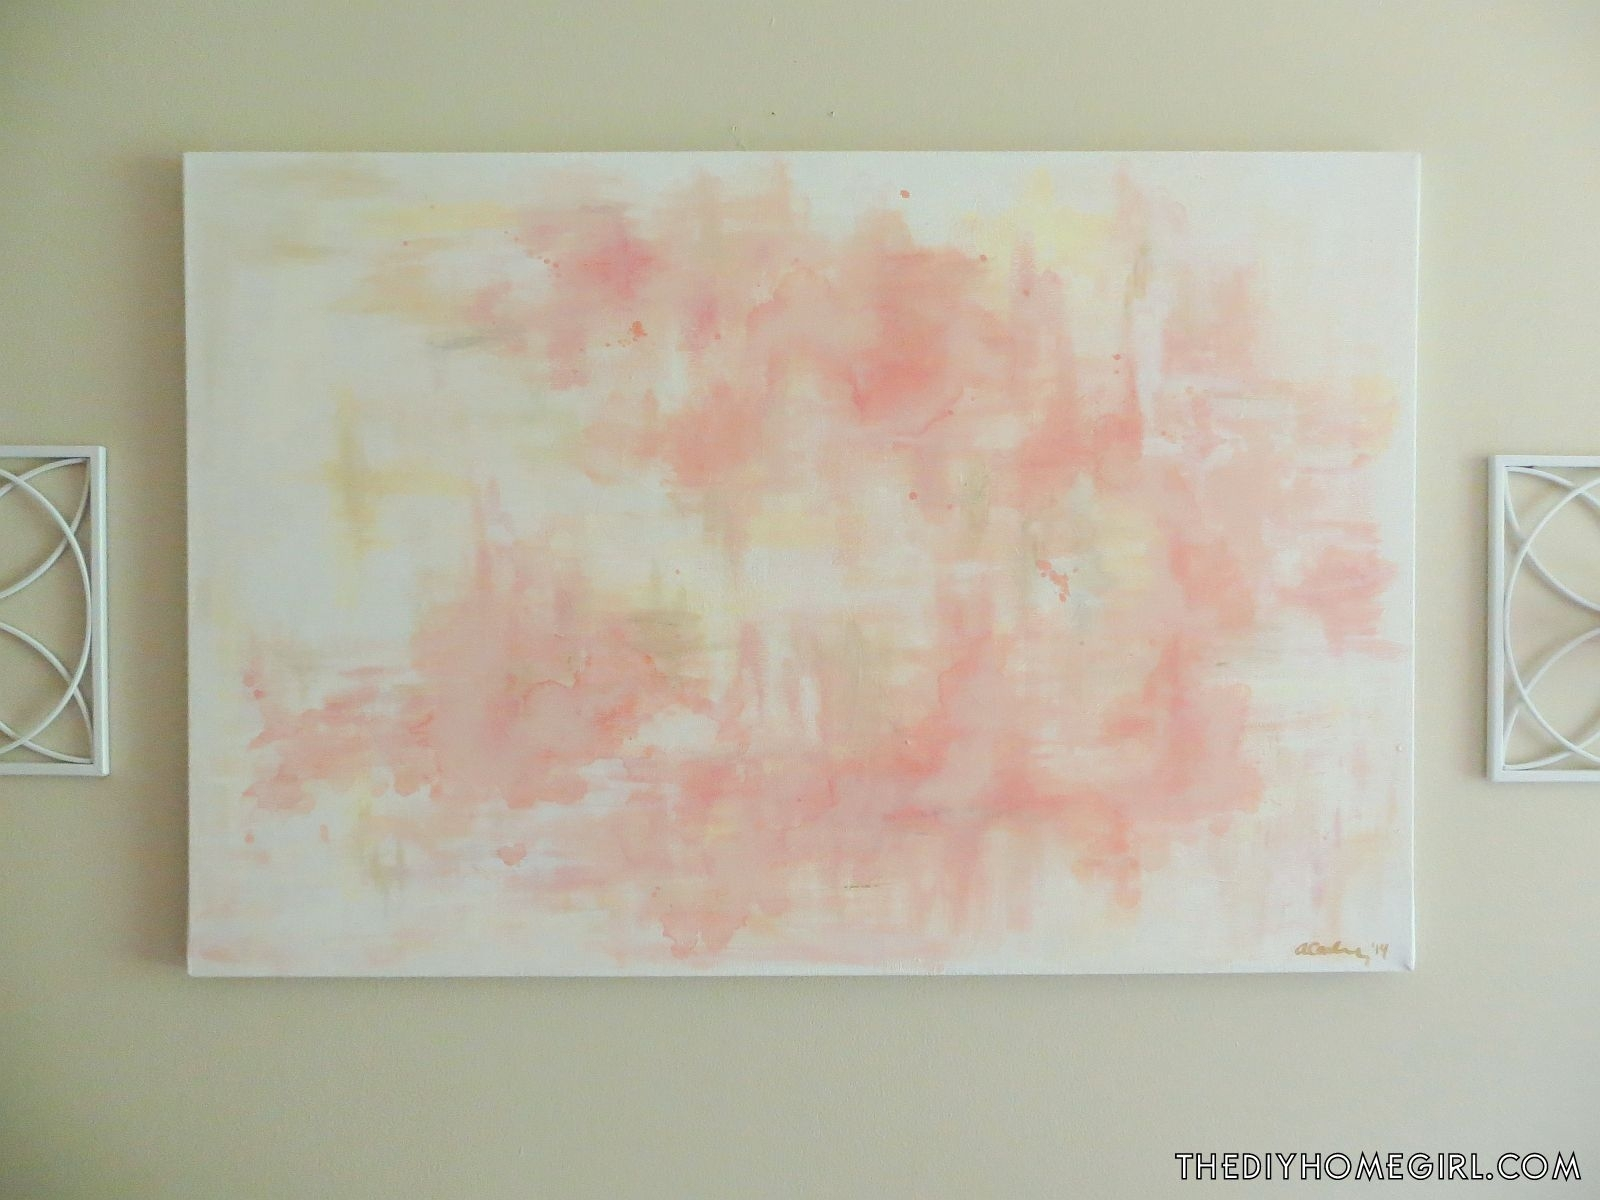 Diy Abstract Wall Art Salmon Shrimp Toast Pink Rose Gold Silver In Recent Pink Abstract Wall Art (View 10 of 20)